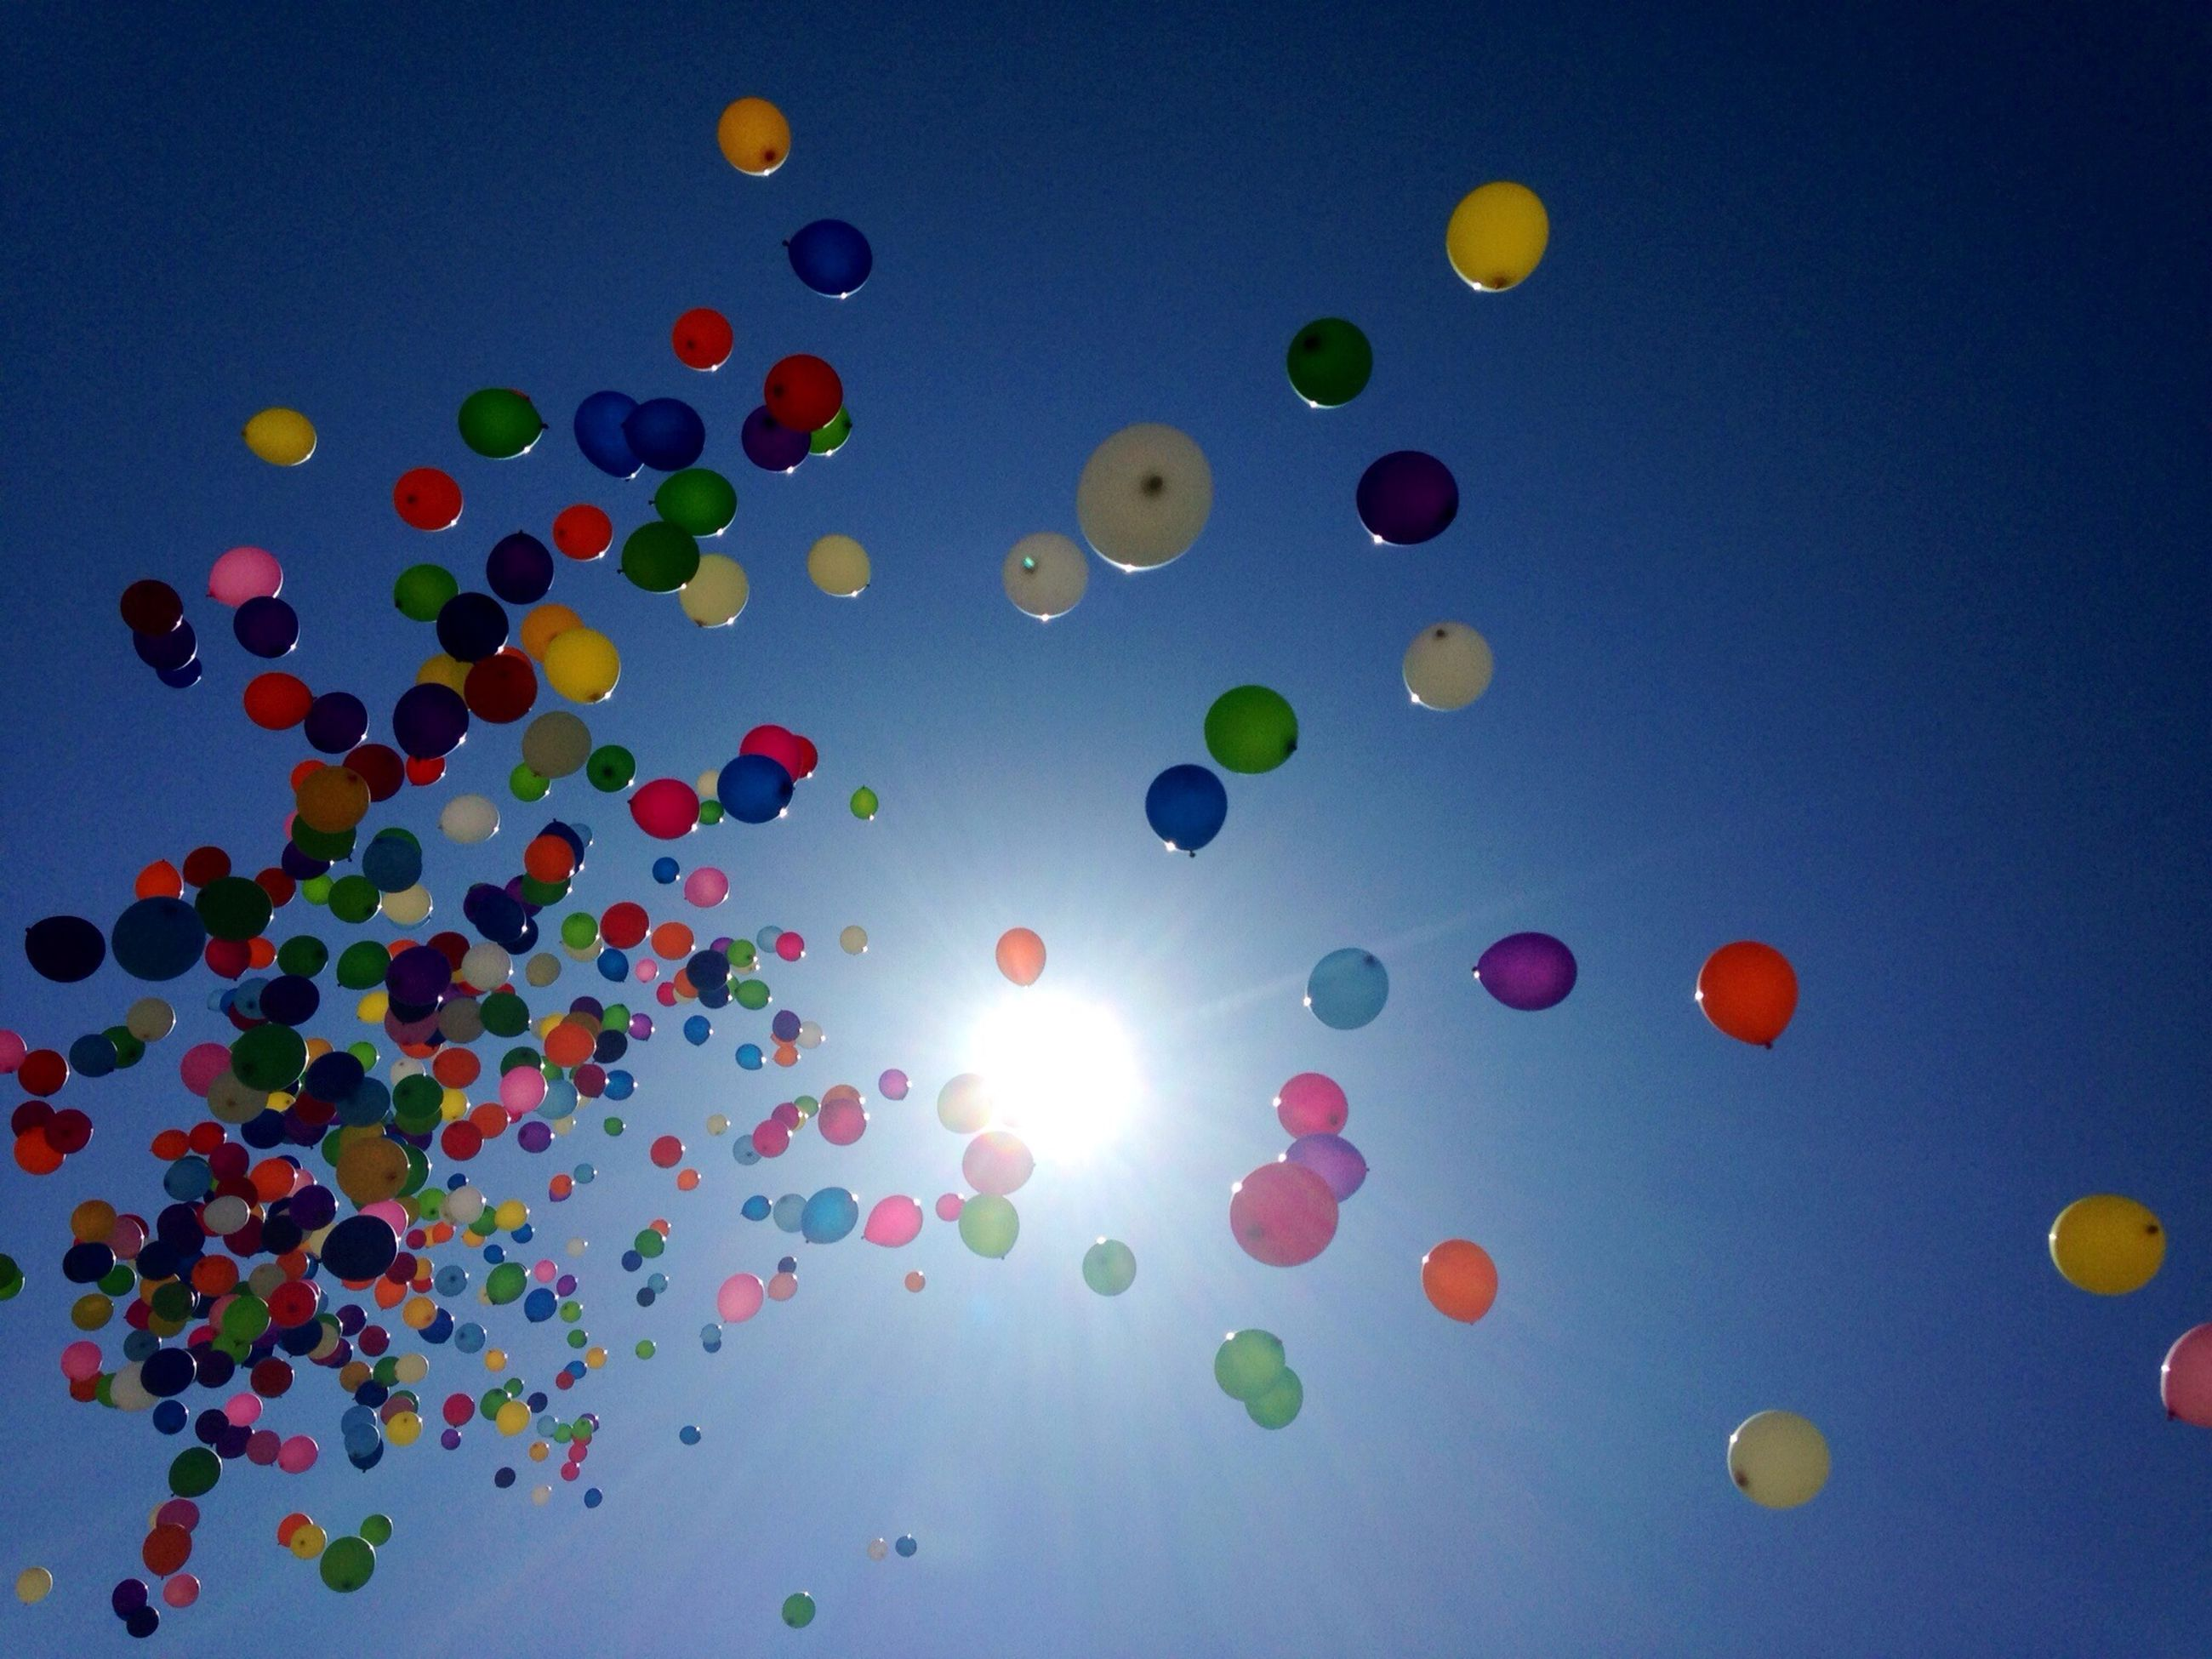 multi colored, mid-air, balloon, low angle view, blue, flying, sky, lens flare, colorful, clear sky, sun, hot air balloon, beauty in nature, no people, nature, outdoors, circle, large group of objects, scenics, copy space